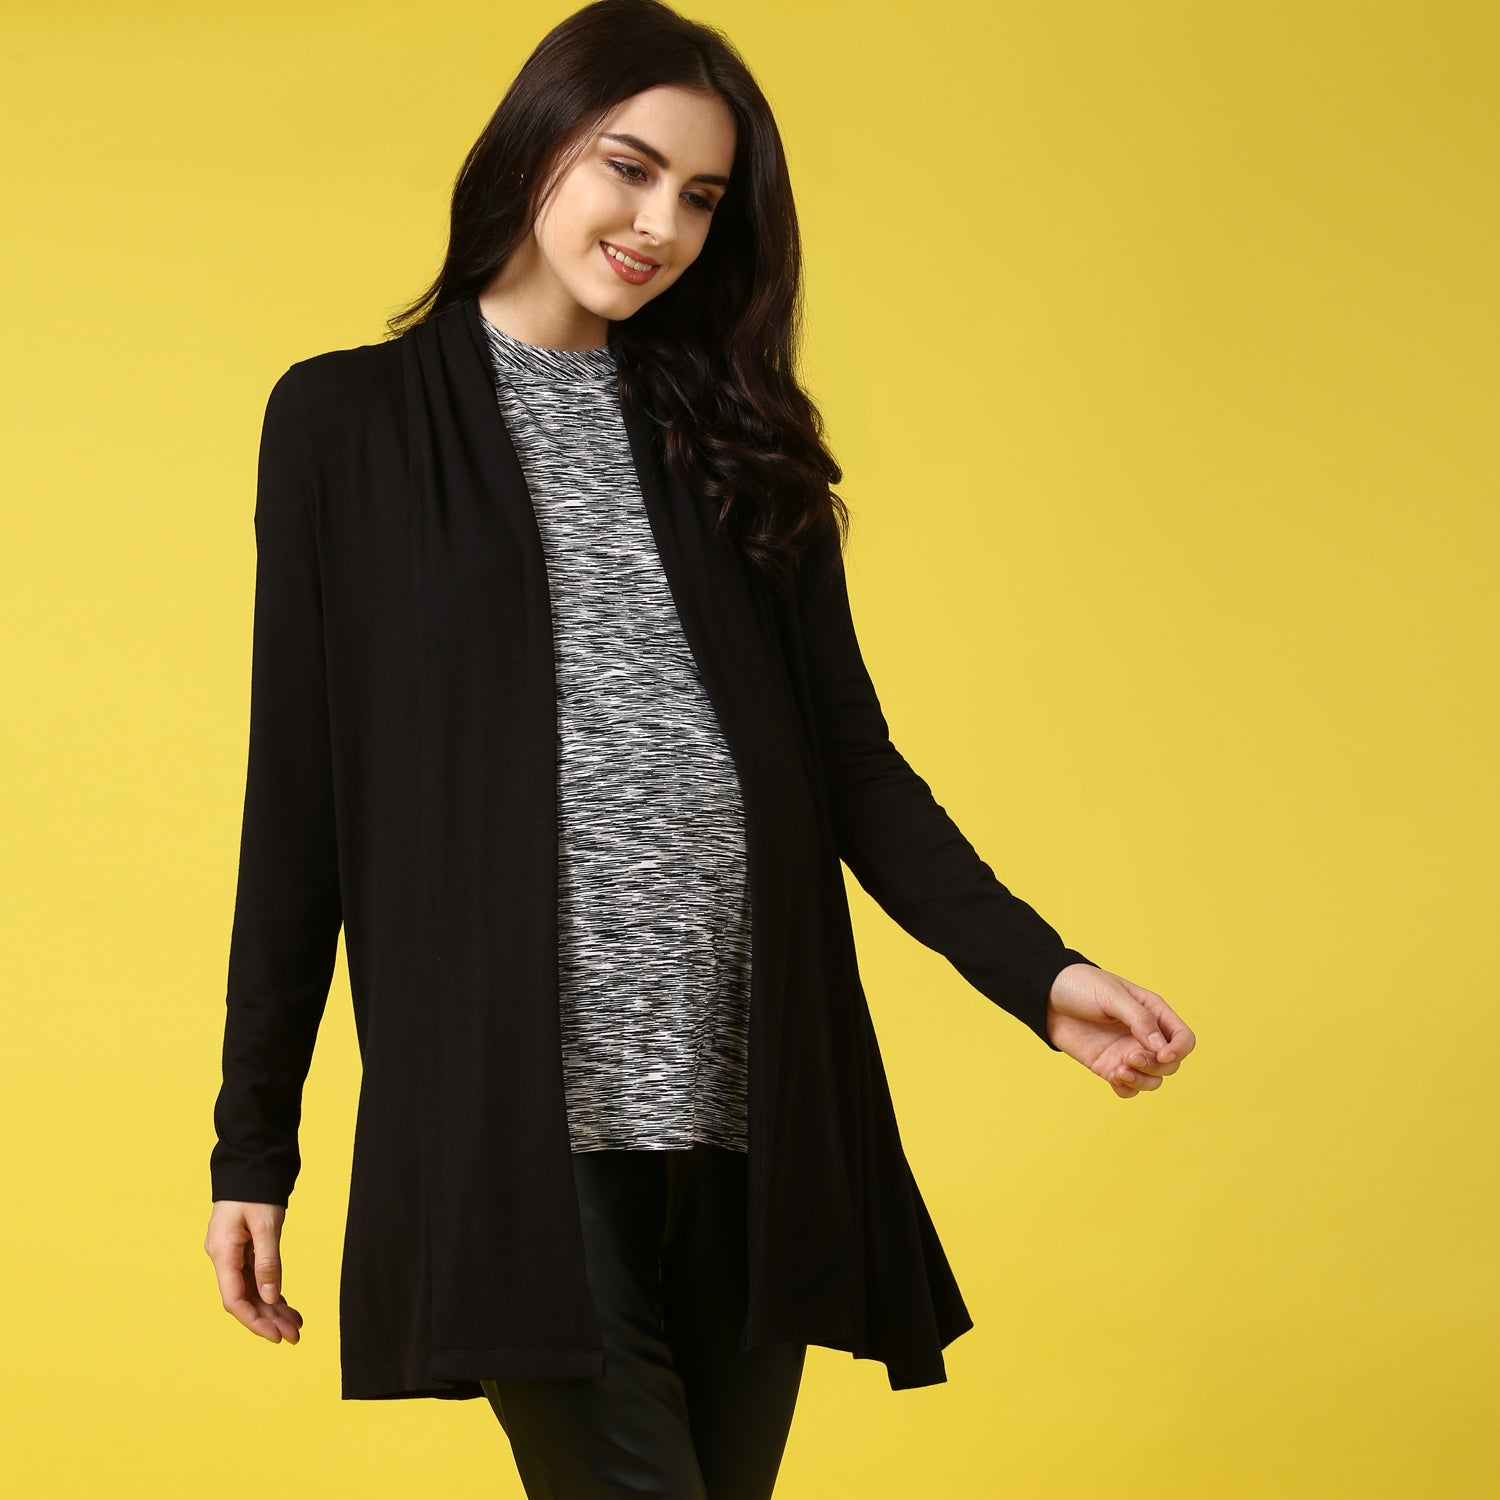 Full Sleeves Cardigan - momsoon maternity fashion wear